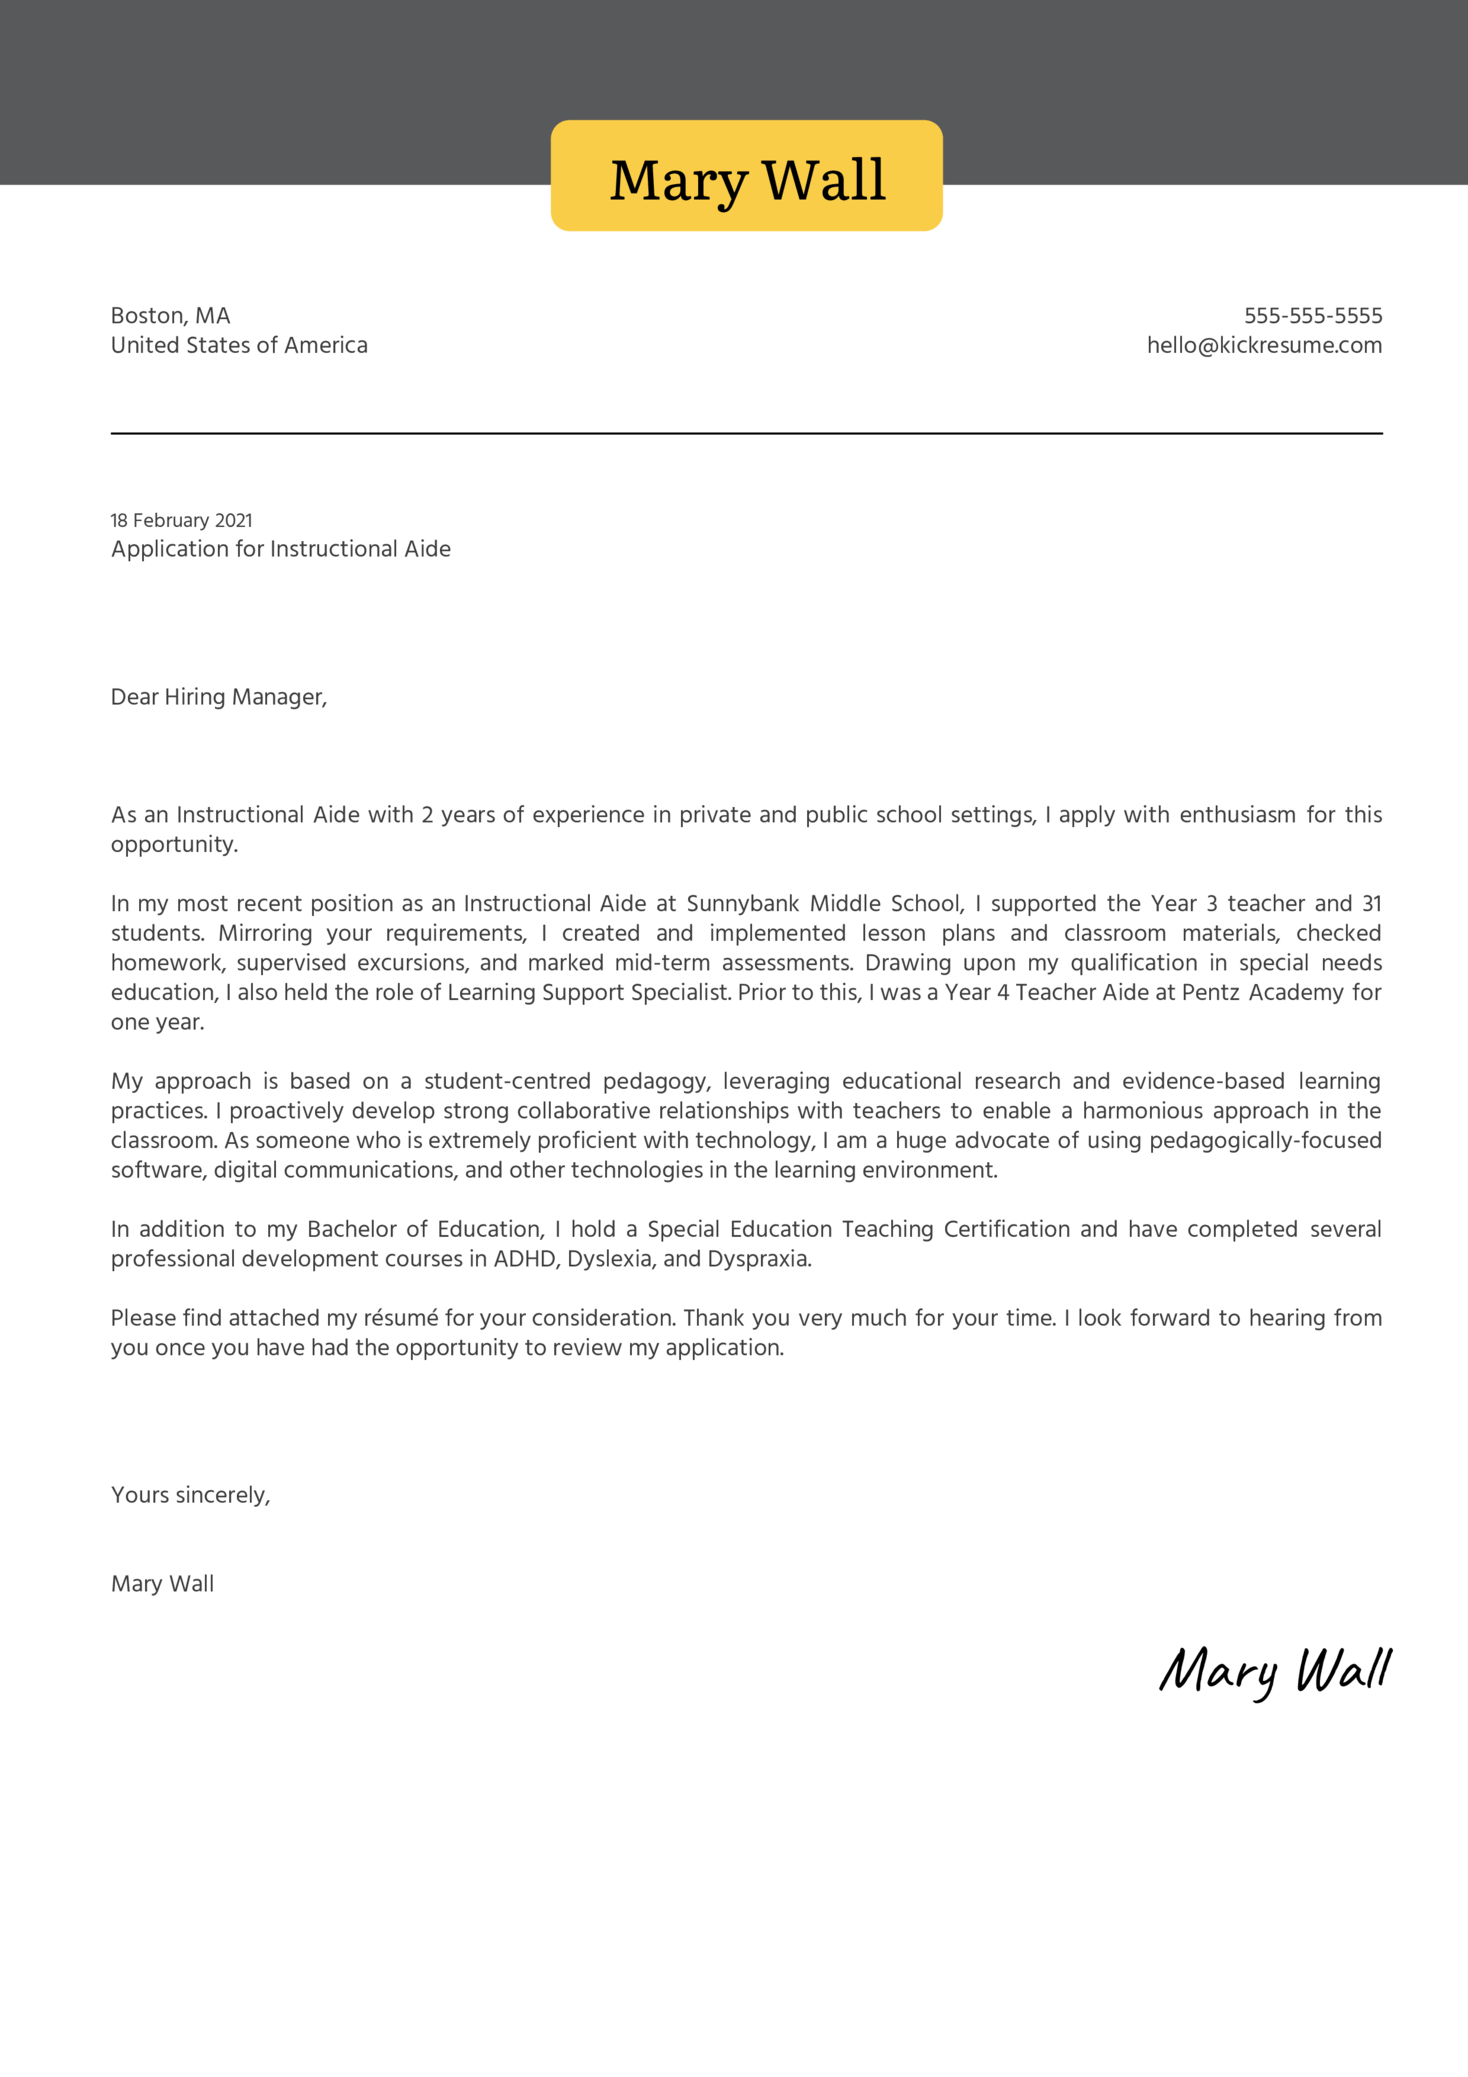 Instructional Aide Cover Letter Sample